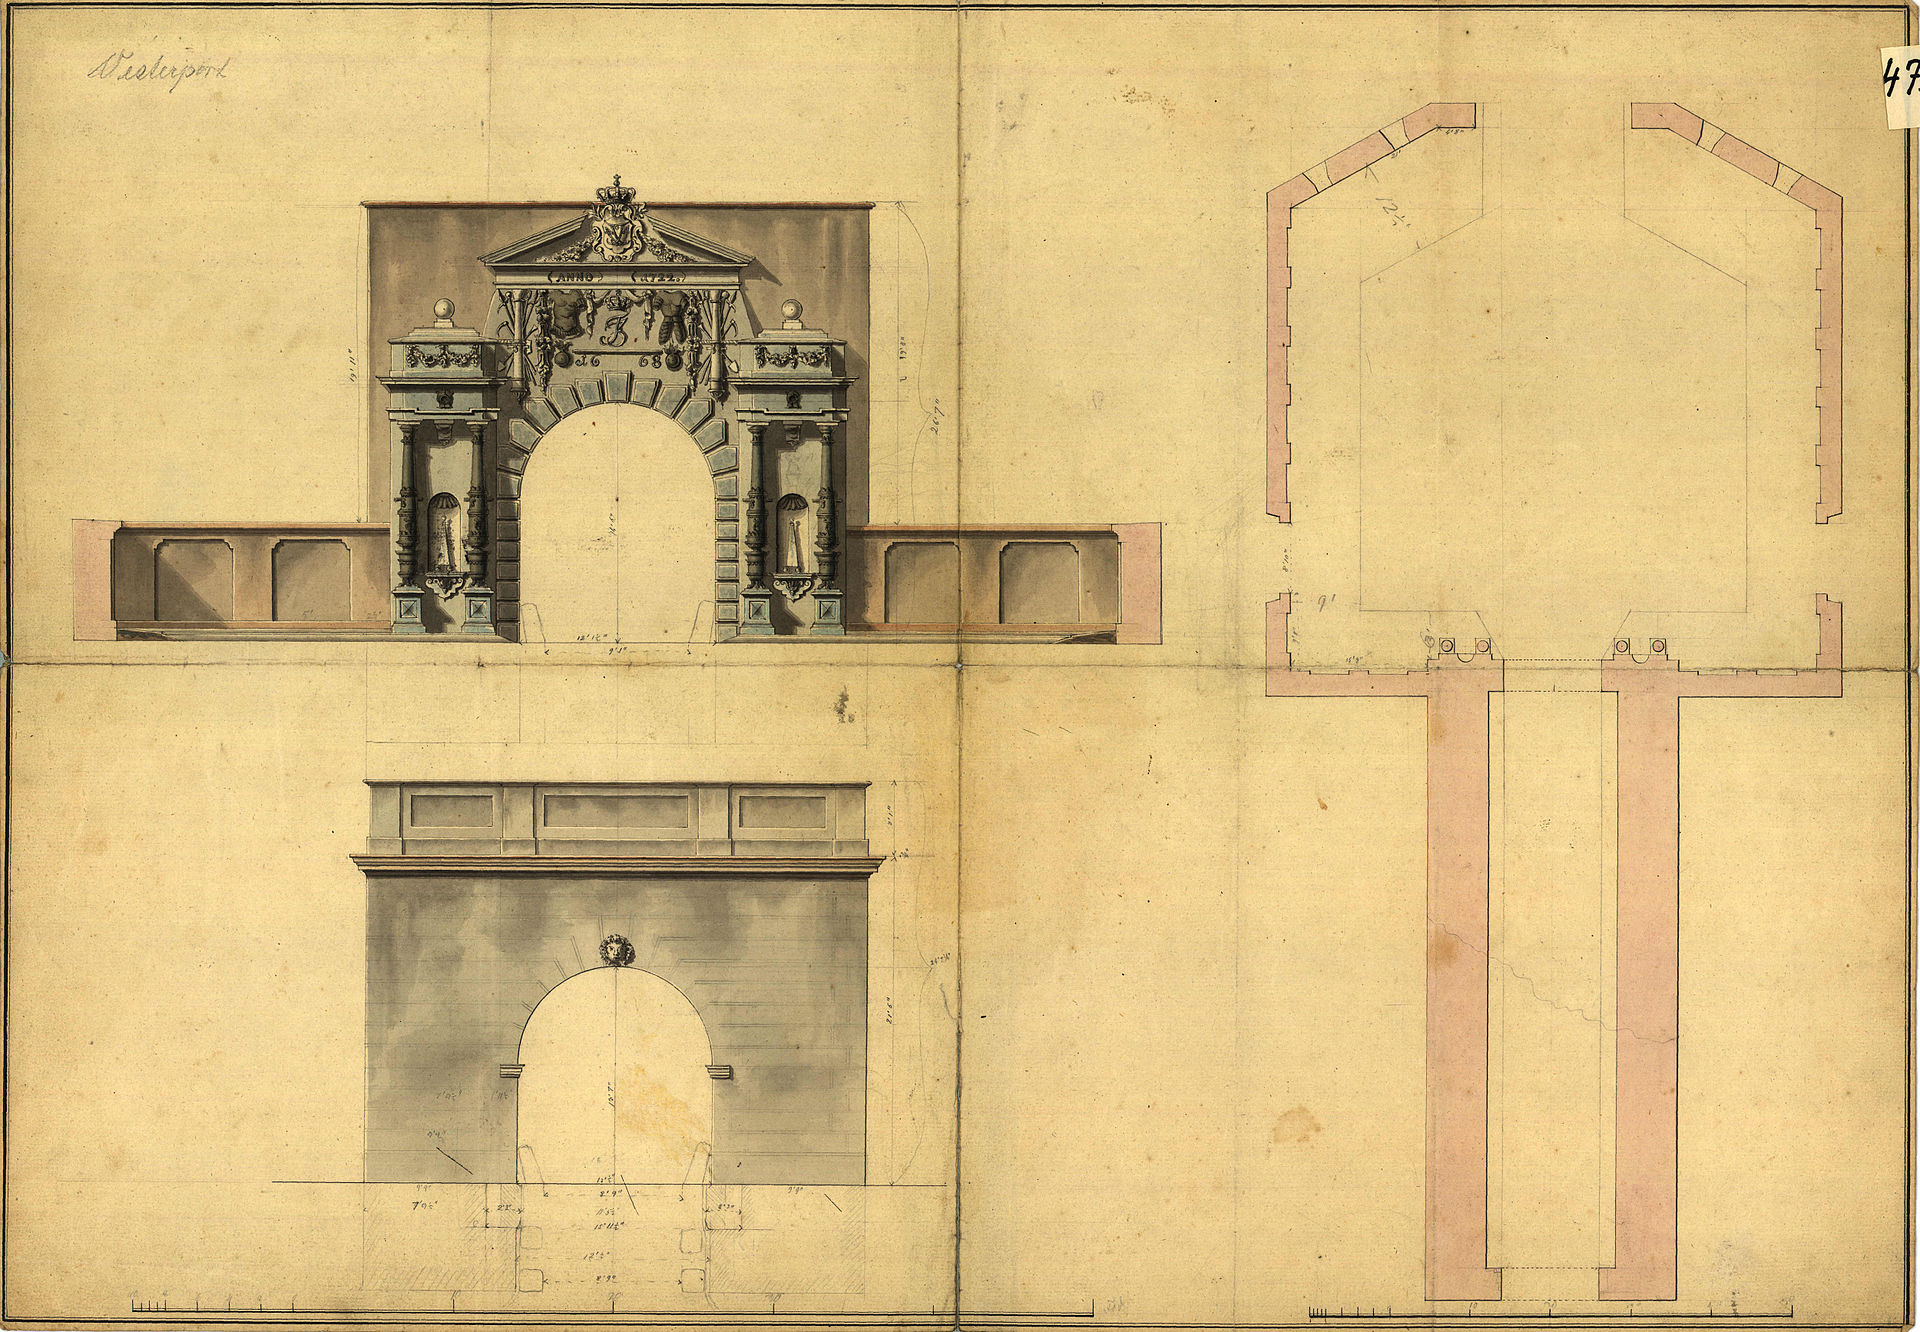 A drawing of Vesterport showing the outer and inward facing arches and the plan showing the tunnel through the embakment